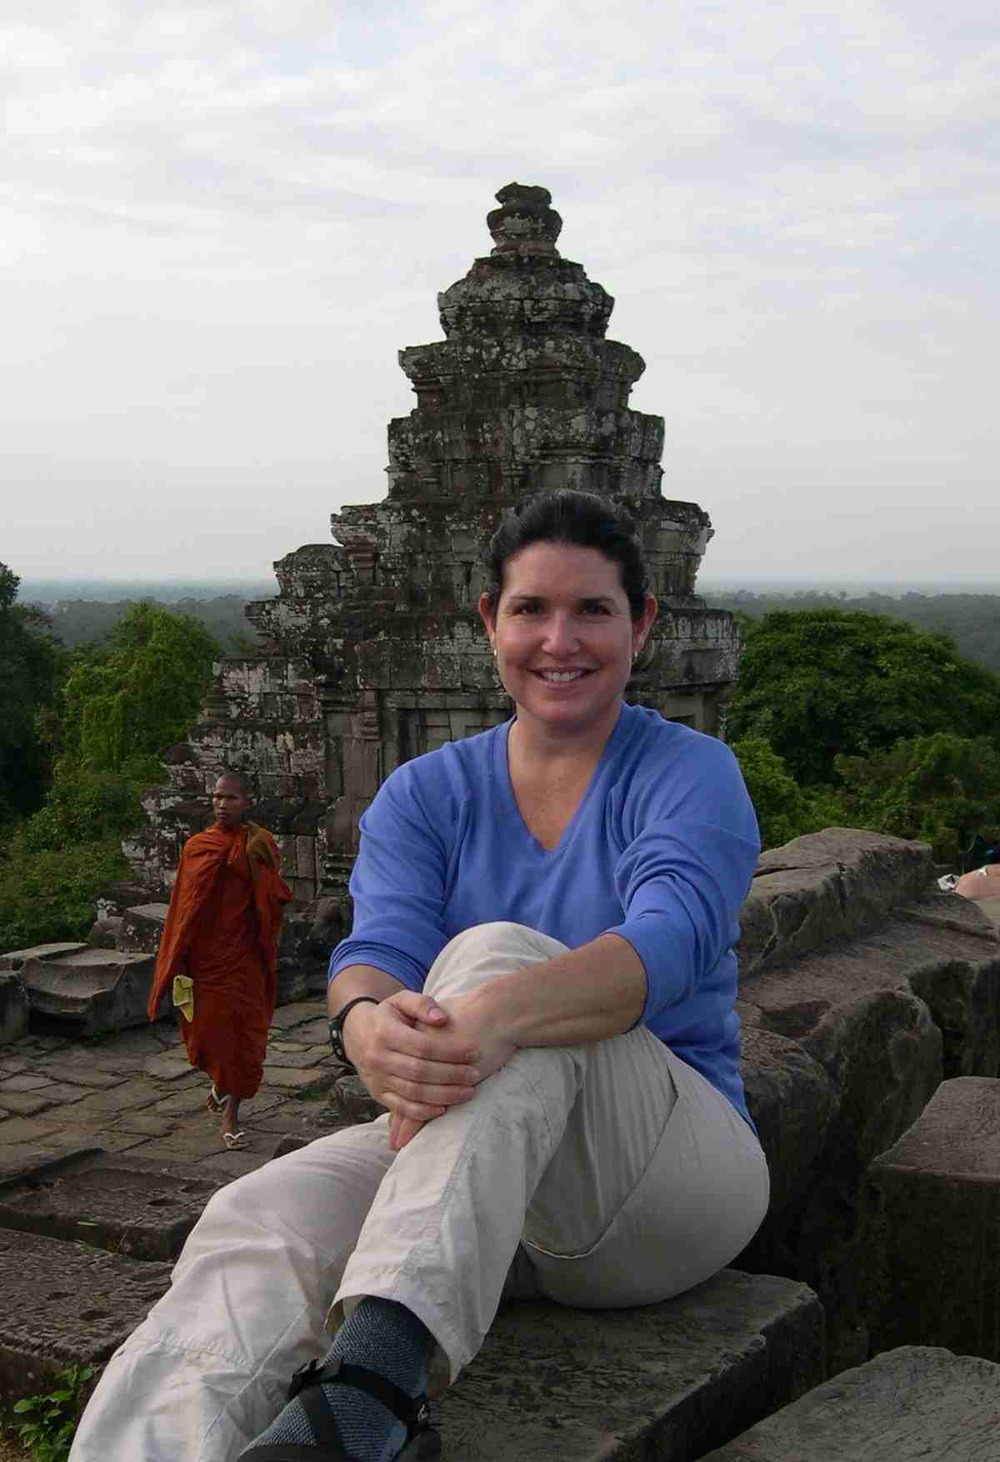 Perched atop a temple in Angkor Wat for sunset (the monk was an added bonus) Angkor Wat, Cambodia